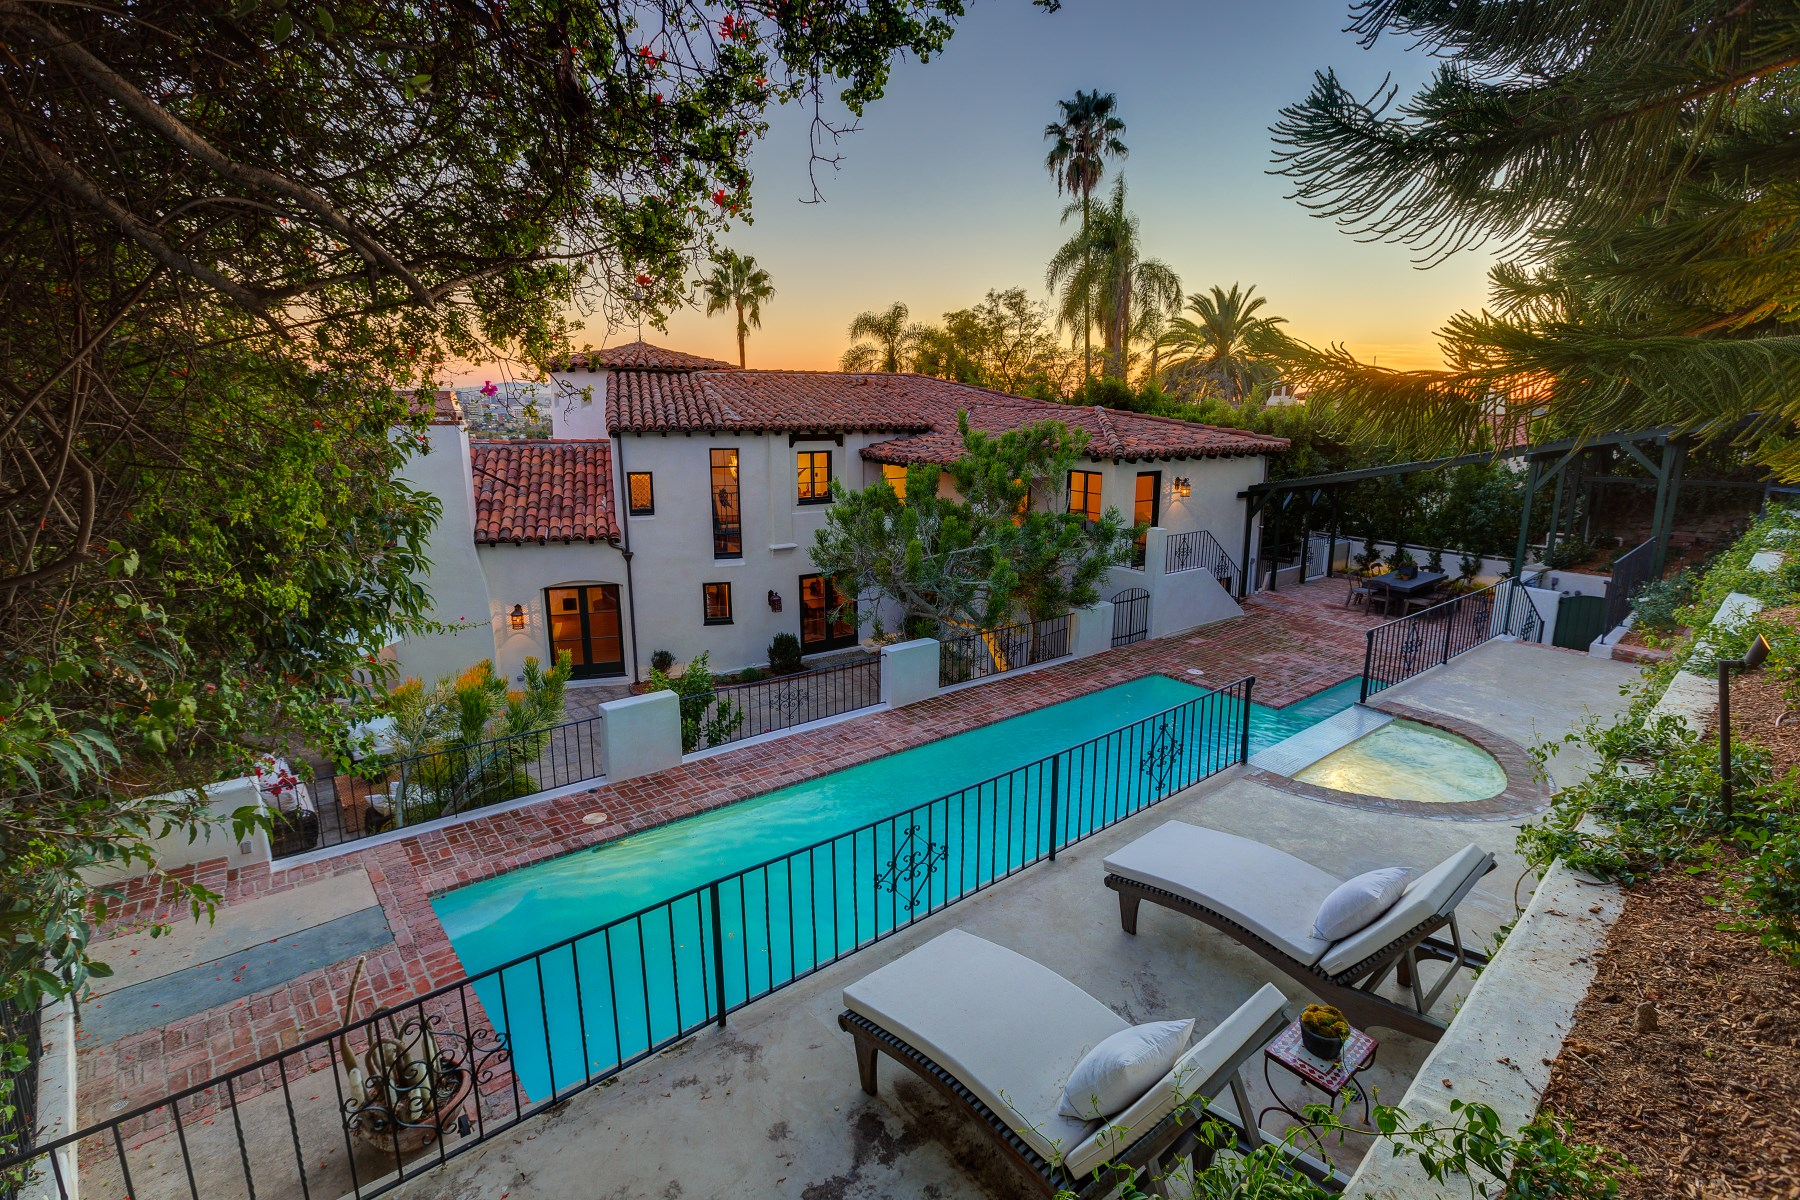 Single Family Home for Sale at 4447 Cromwell Avenue Los Angeles, California, 90027 United States